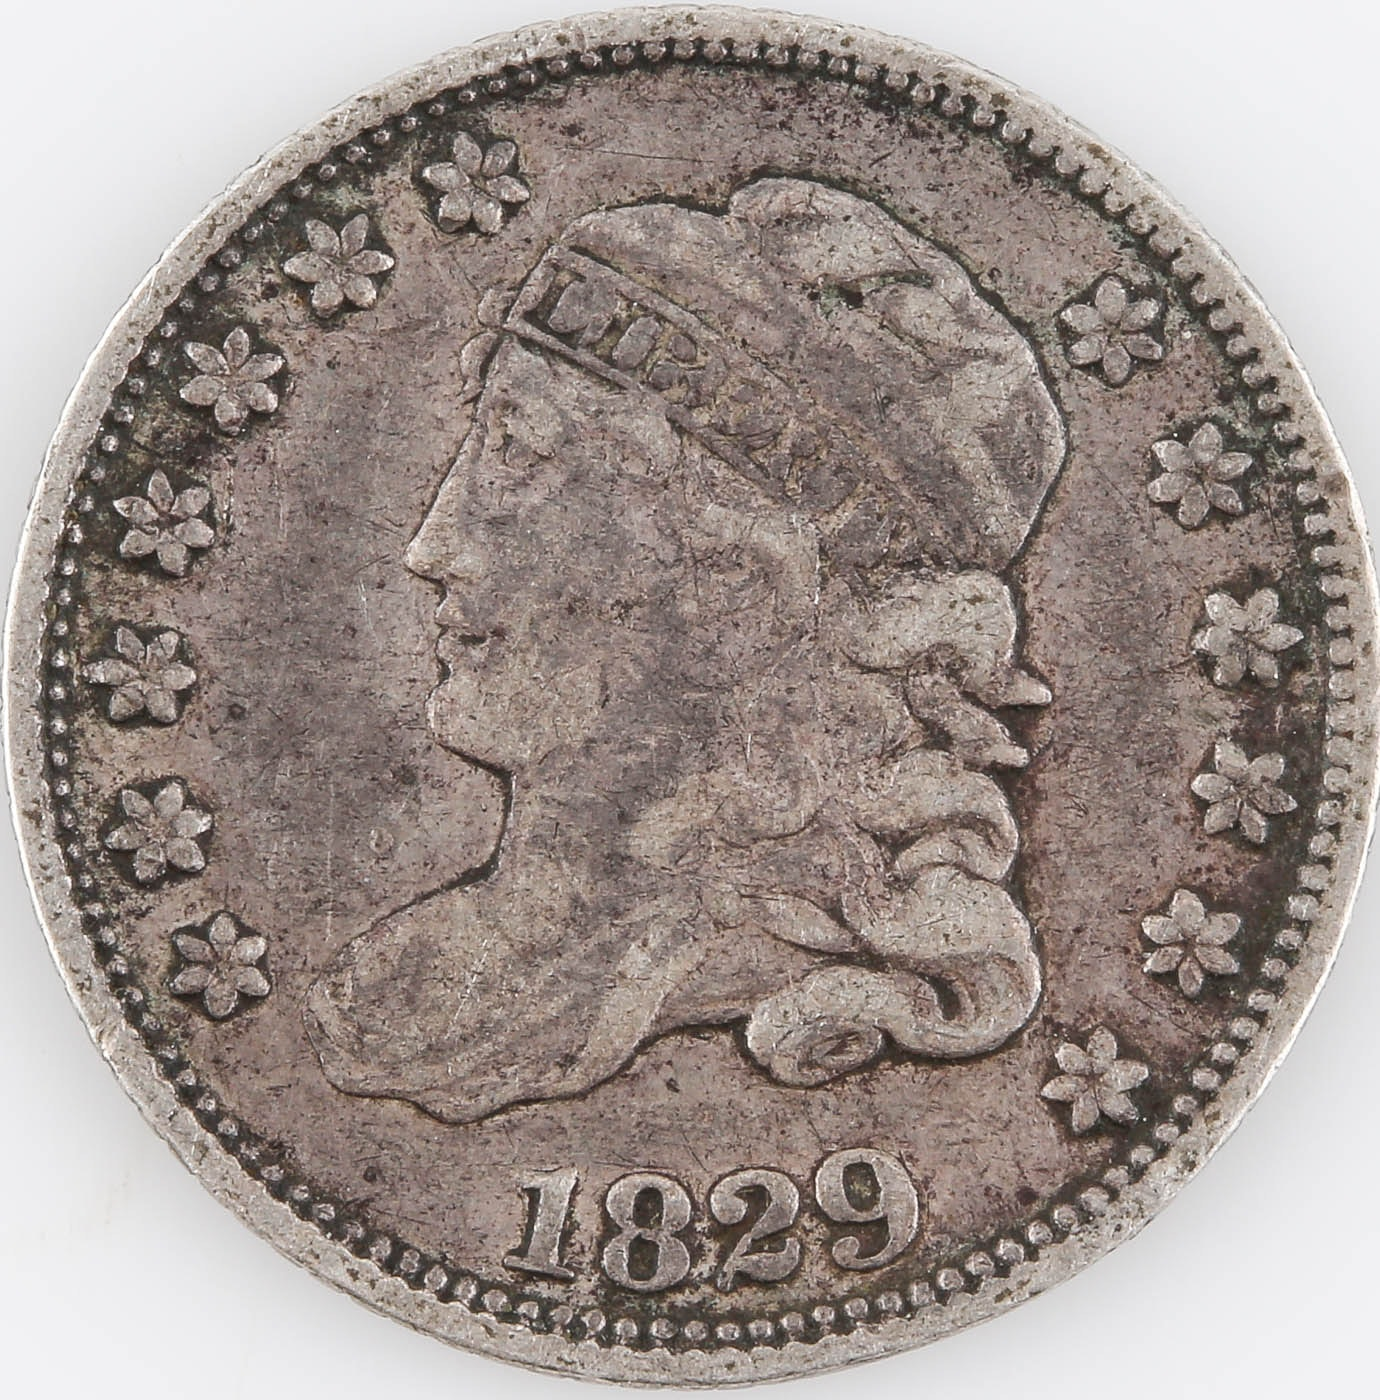 First Year of Issue 1829 Capped Bust Silver Half Dime